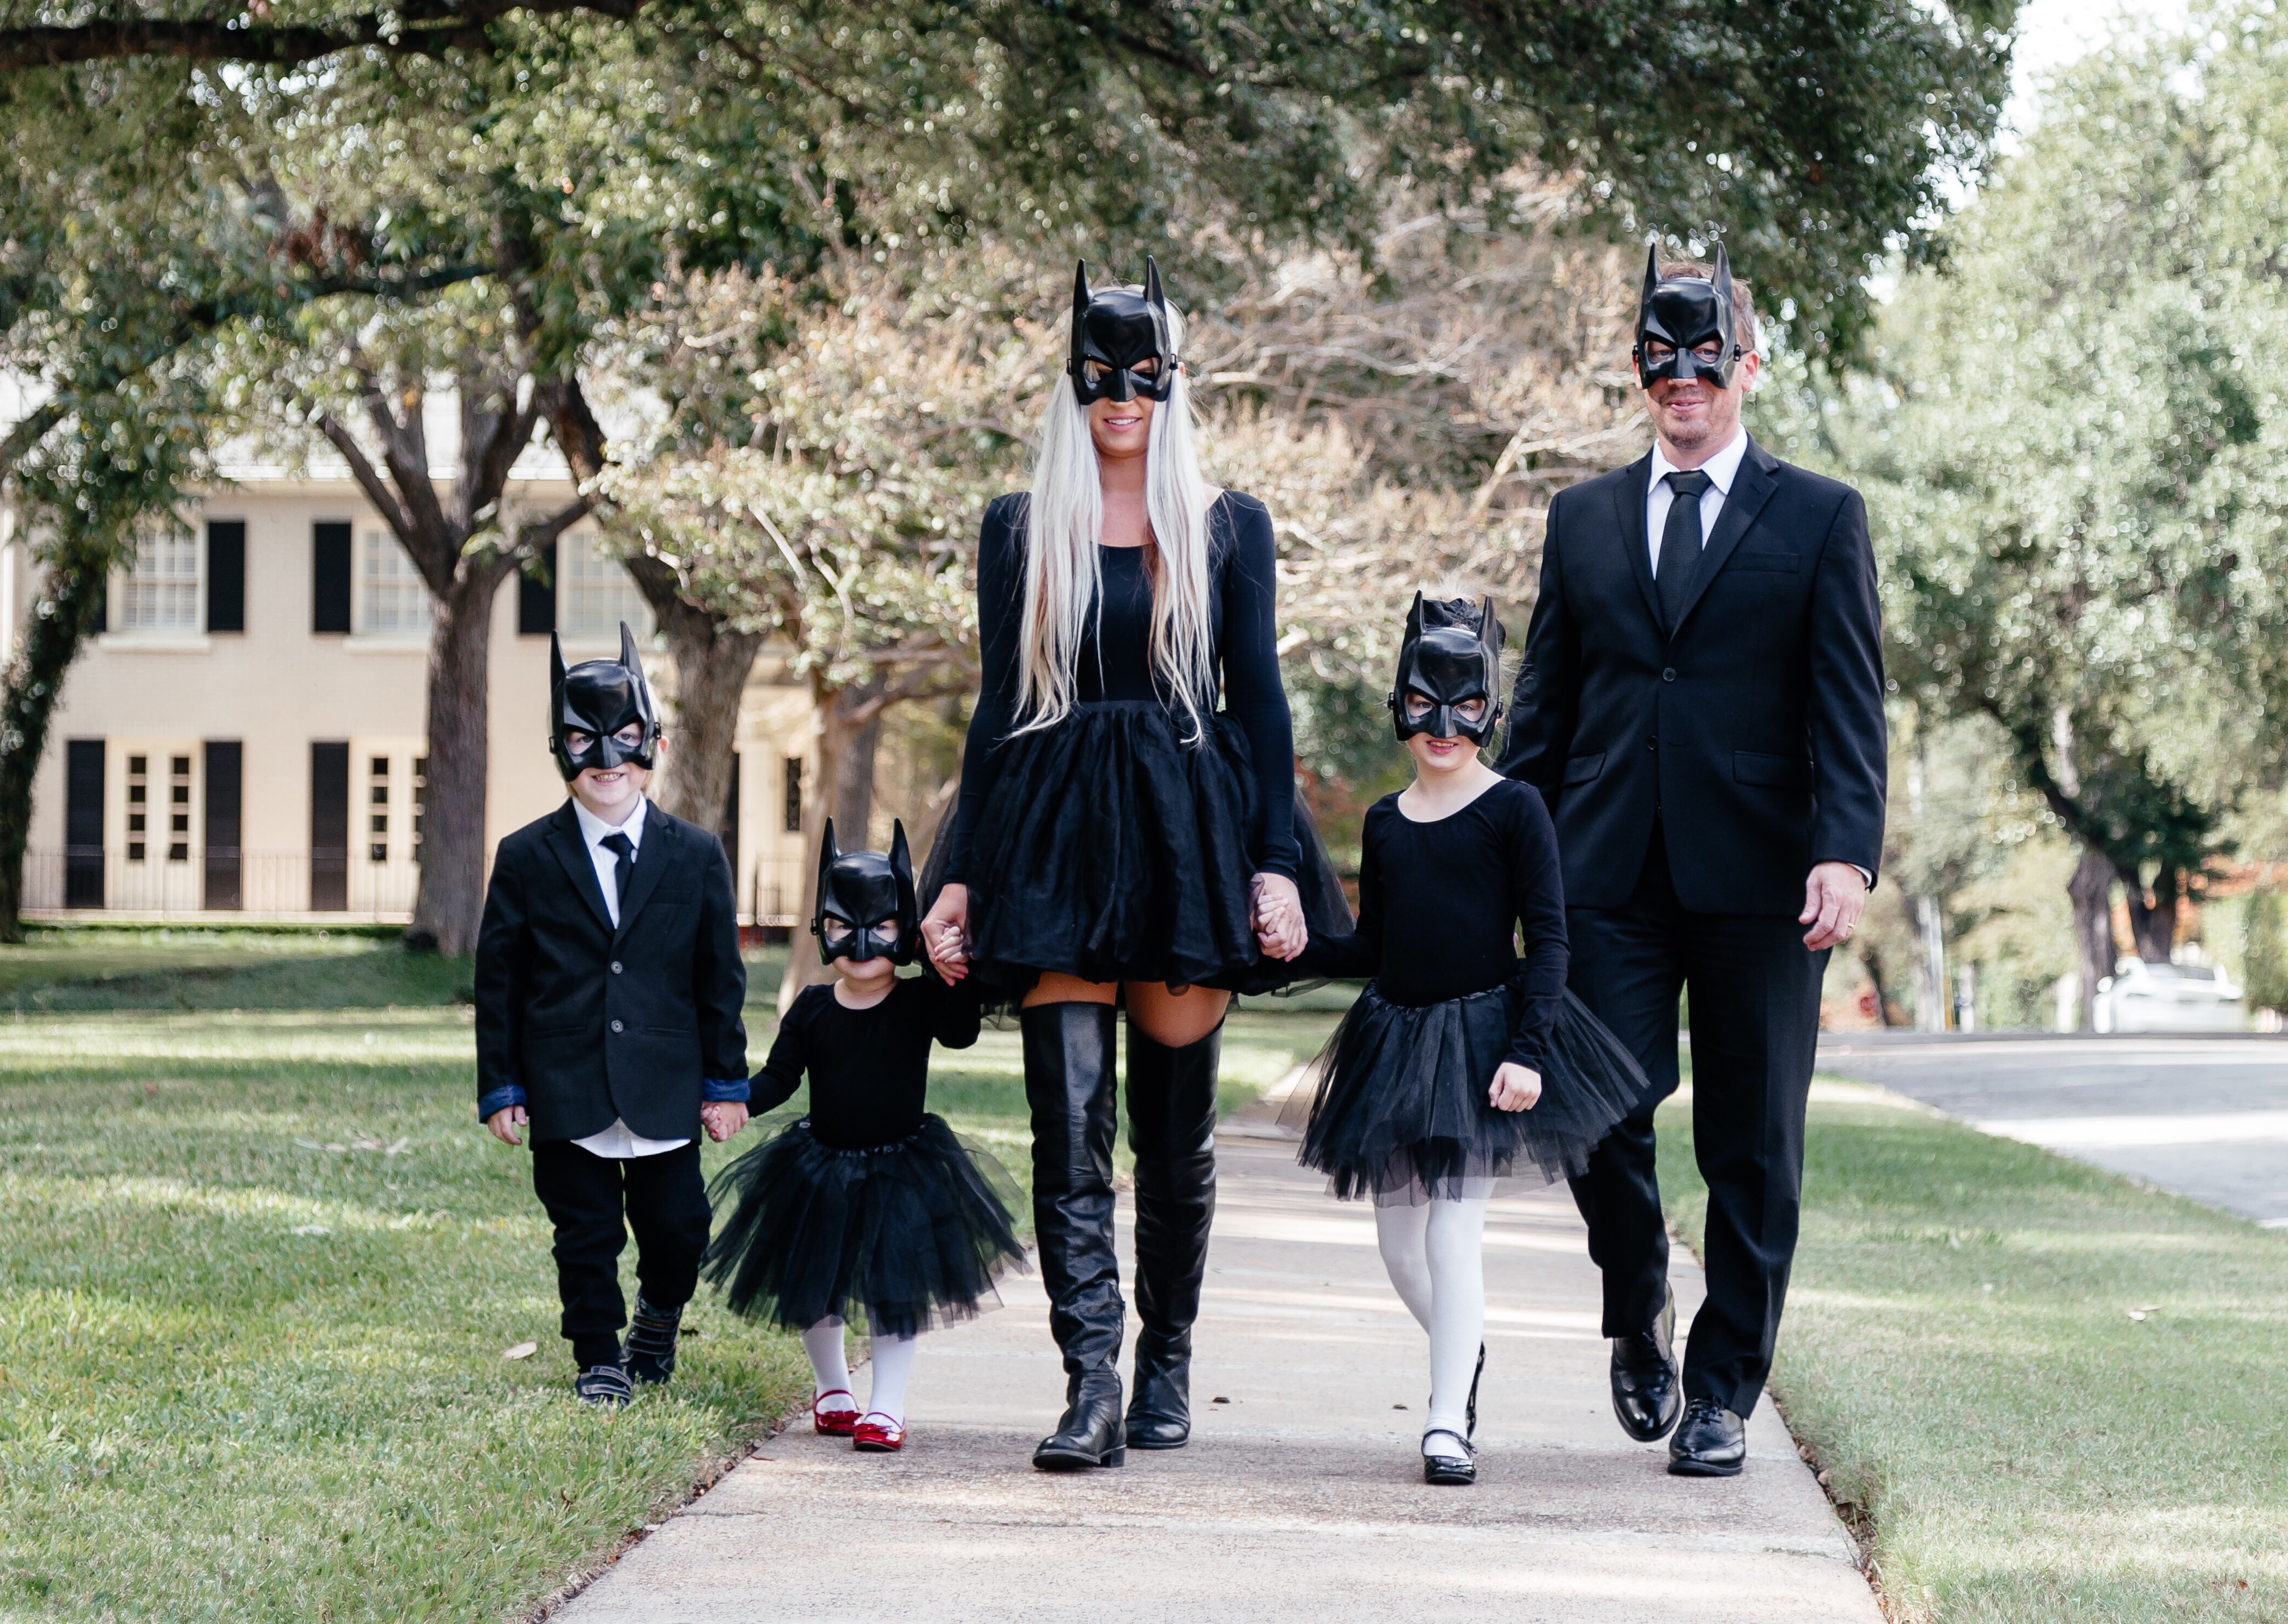 Stephany BOWMAN editor of Stephany's Choice wears black and white Batman themed halloween costume with the whole family